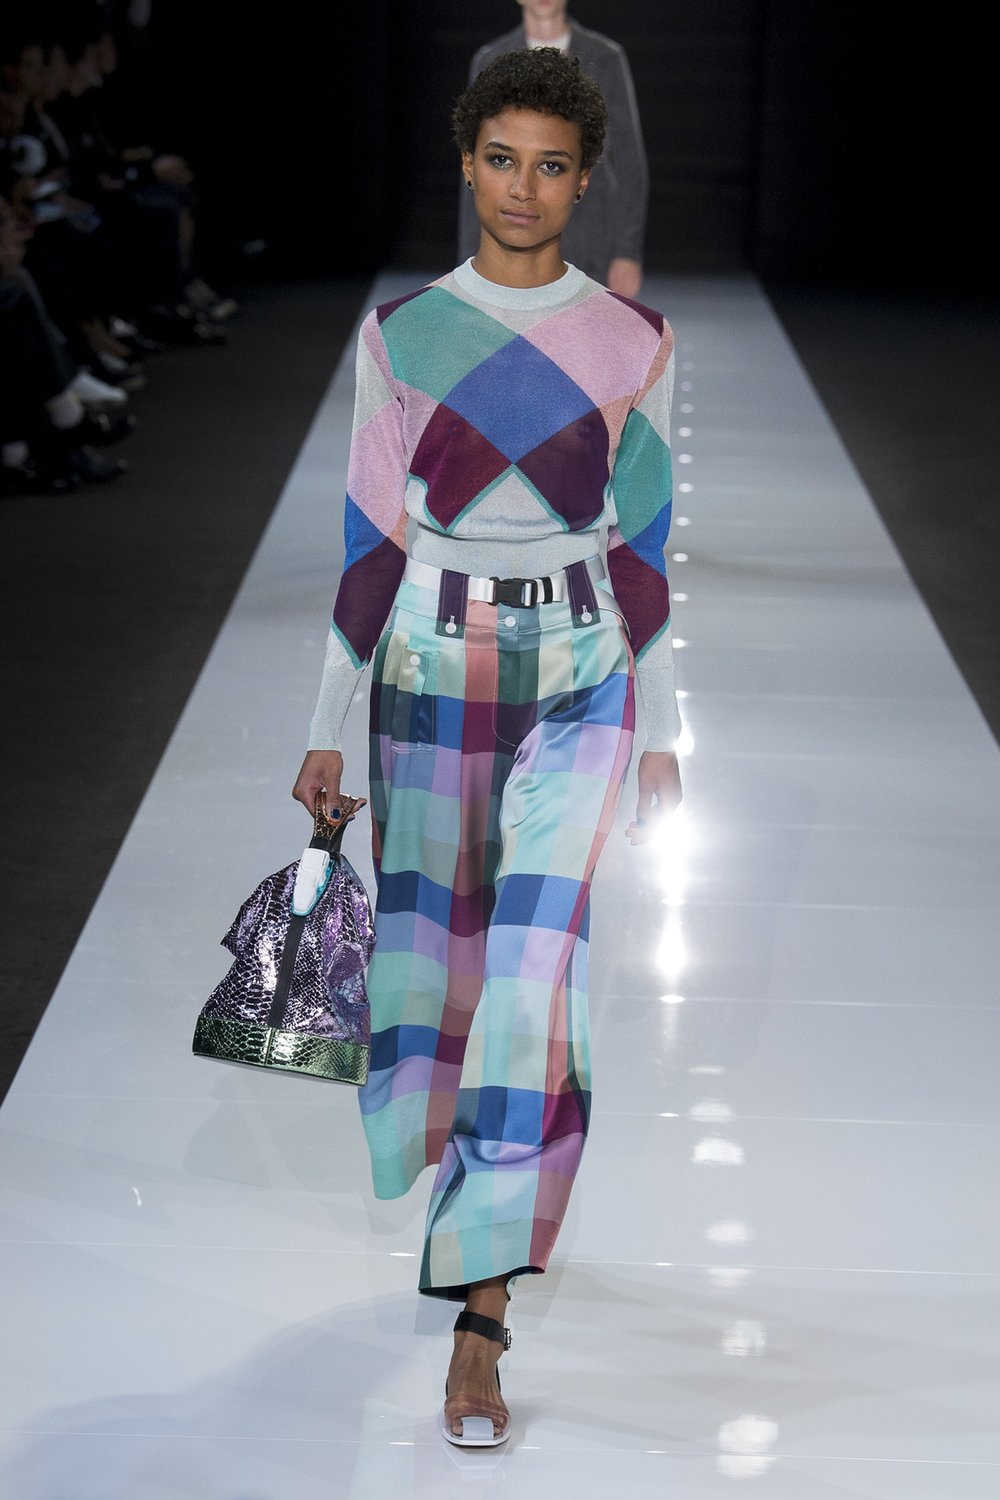 Emporio Armani Ready-To-Wear Spring 2018, image via BOF